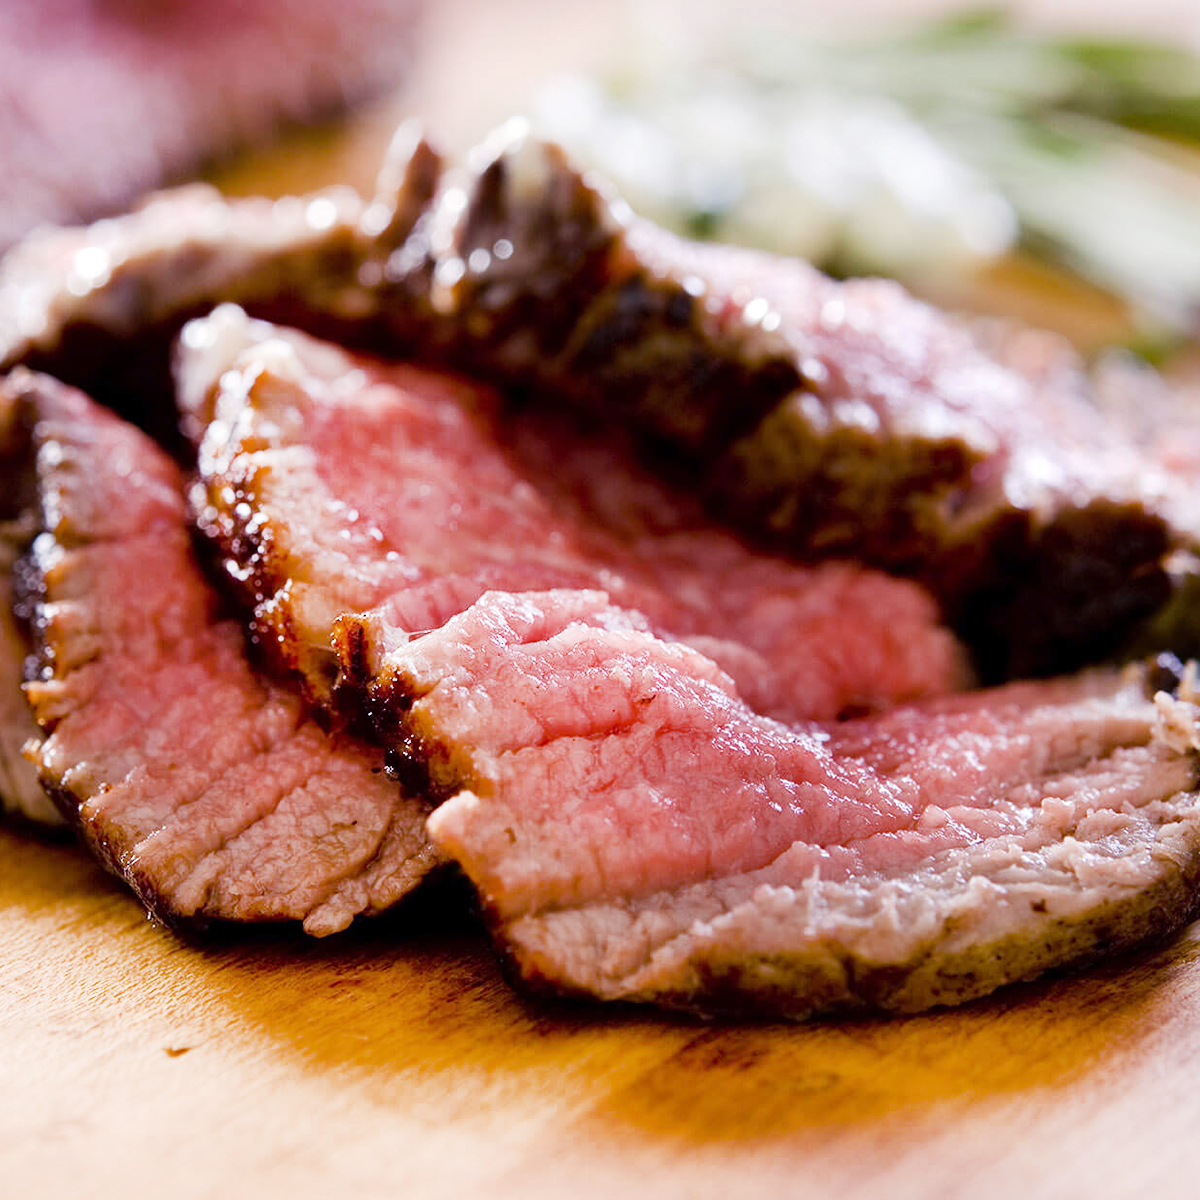 Seaside-Market-Tri-Tip-Product-2.jpg